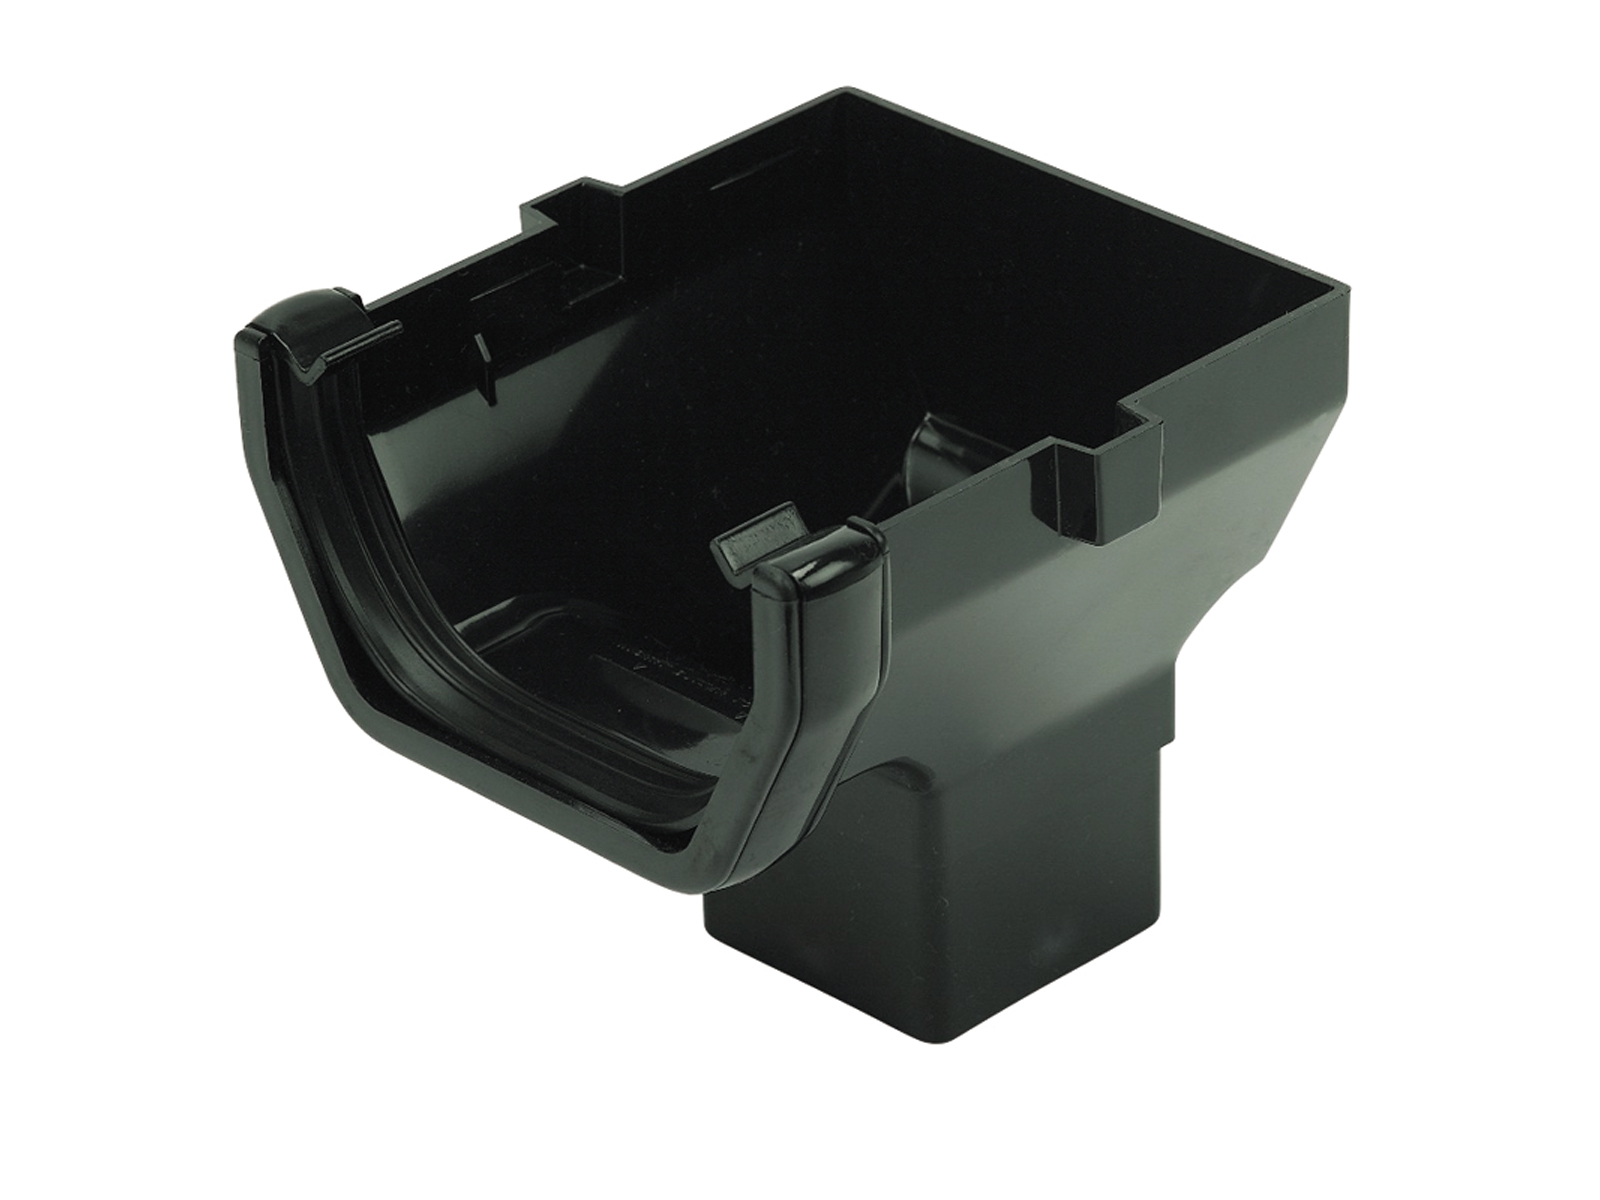 FLOPLAST SQUARE LINE GUTTER - ROS2 STOP END OUTLET - BLACK